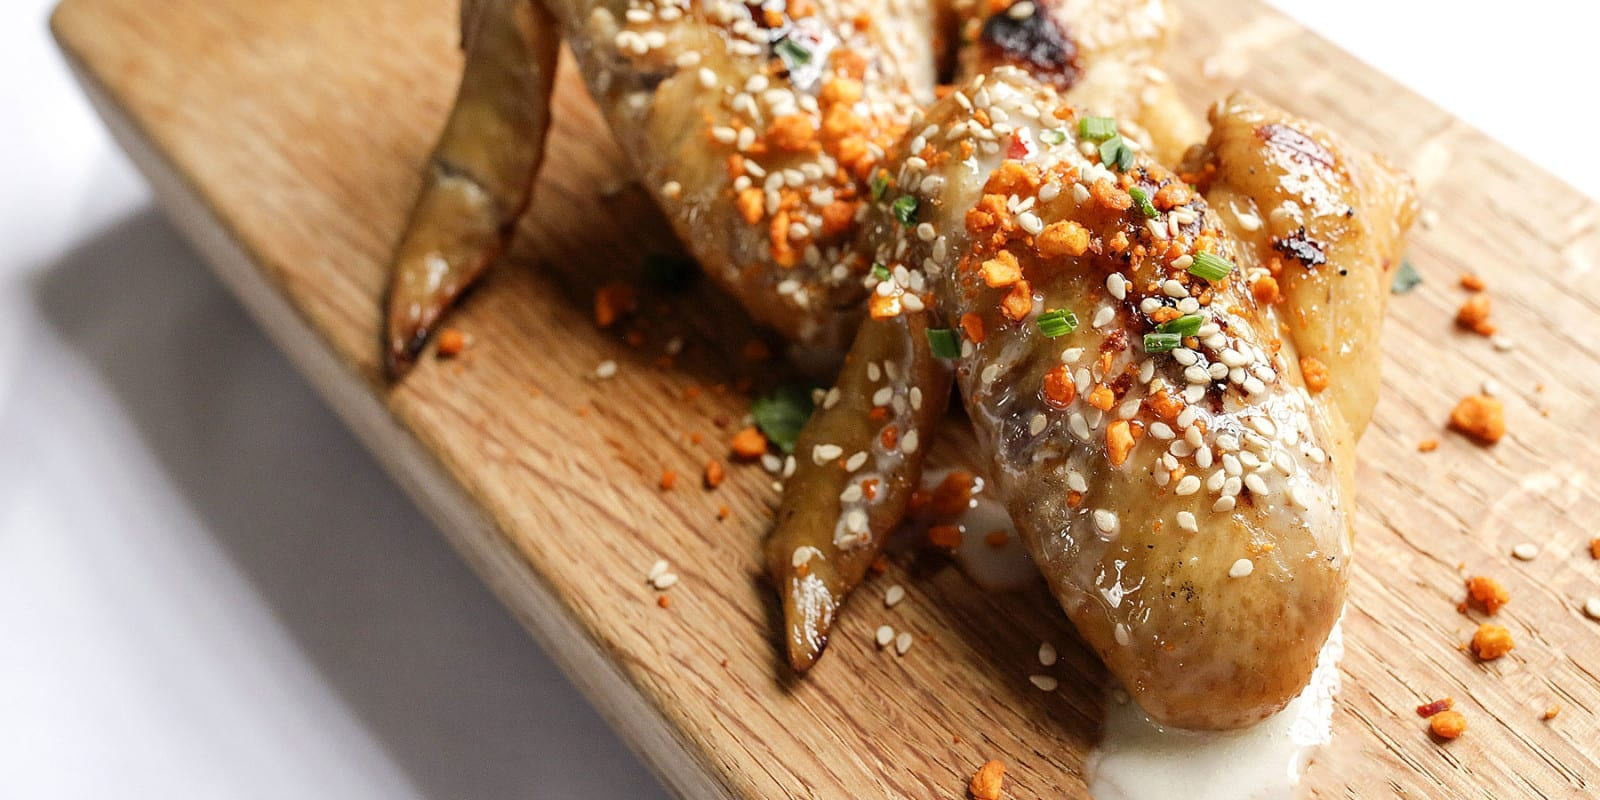 Can't Lose Carolina: A Charlotte Chef's Undefeated Wing Recipe